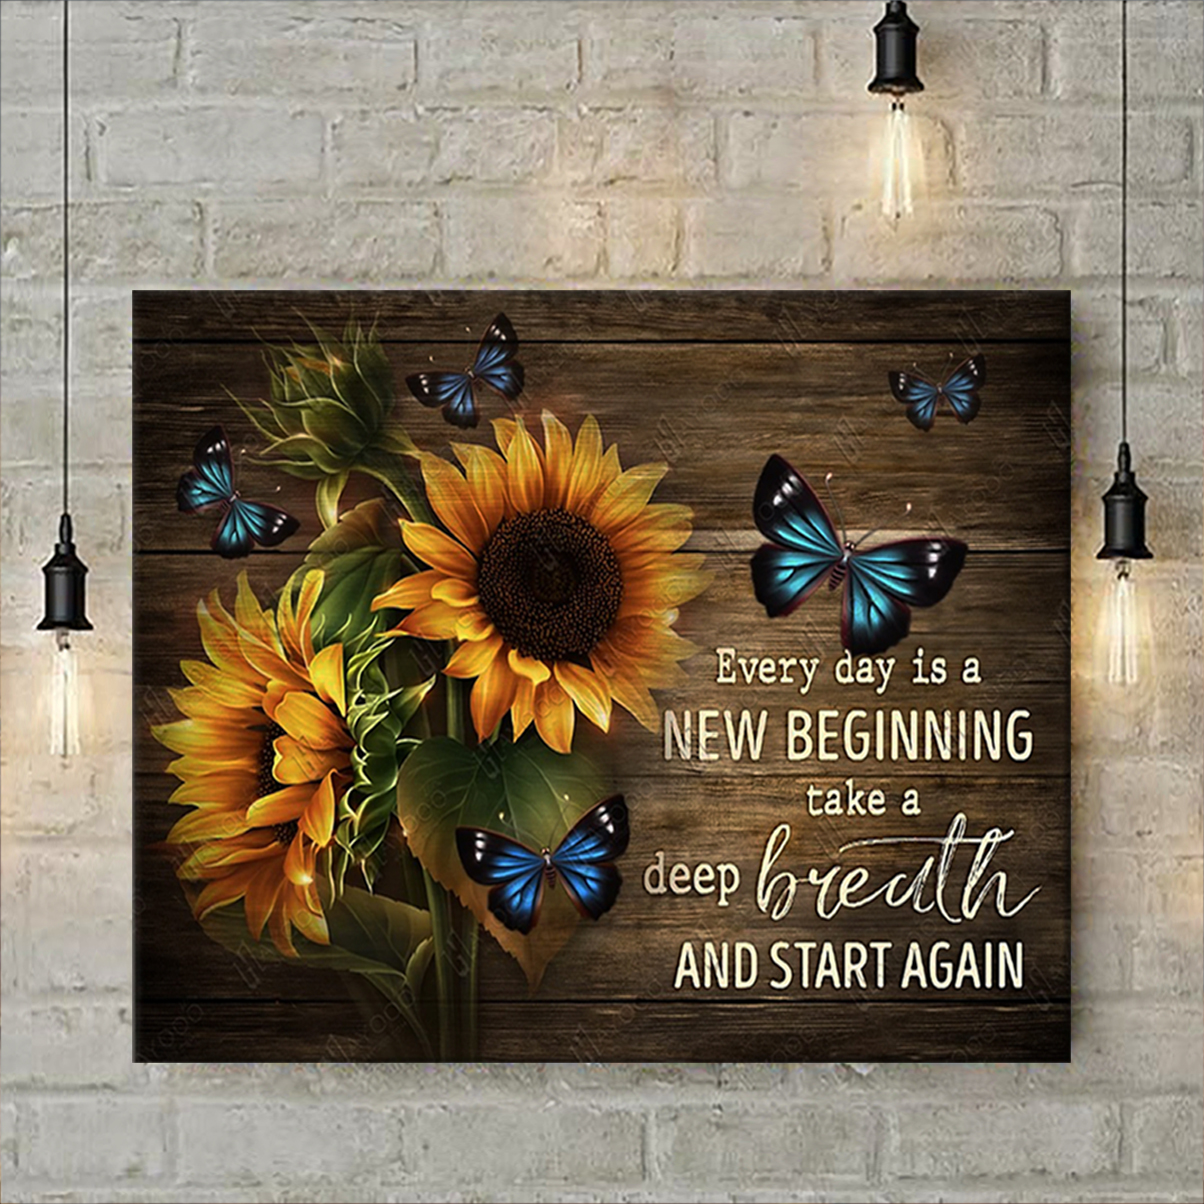 Sunflowers and butterflies everyday is a new beginning poster A3